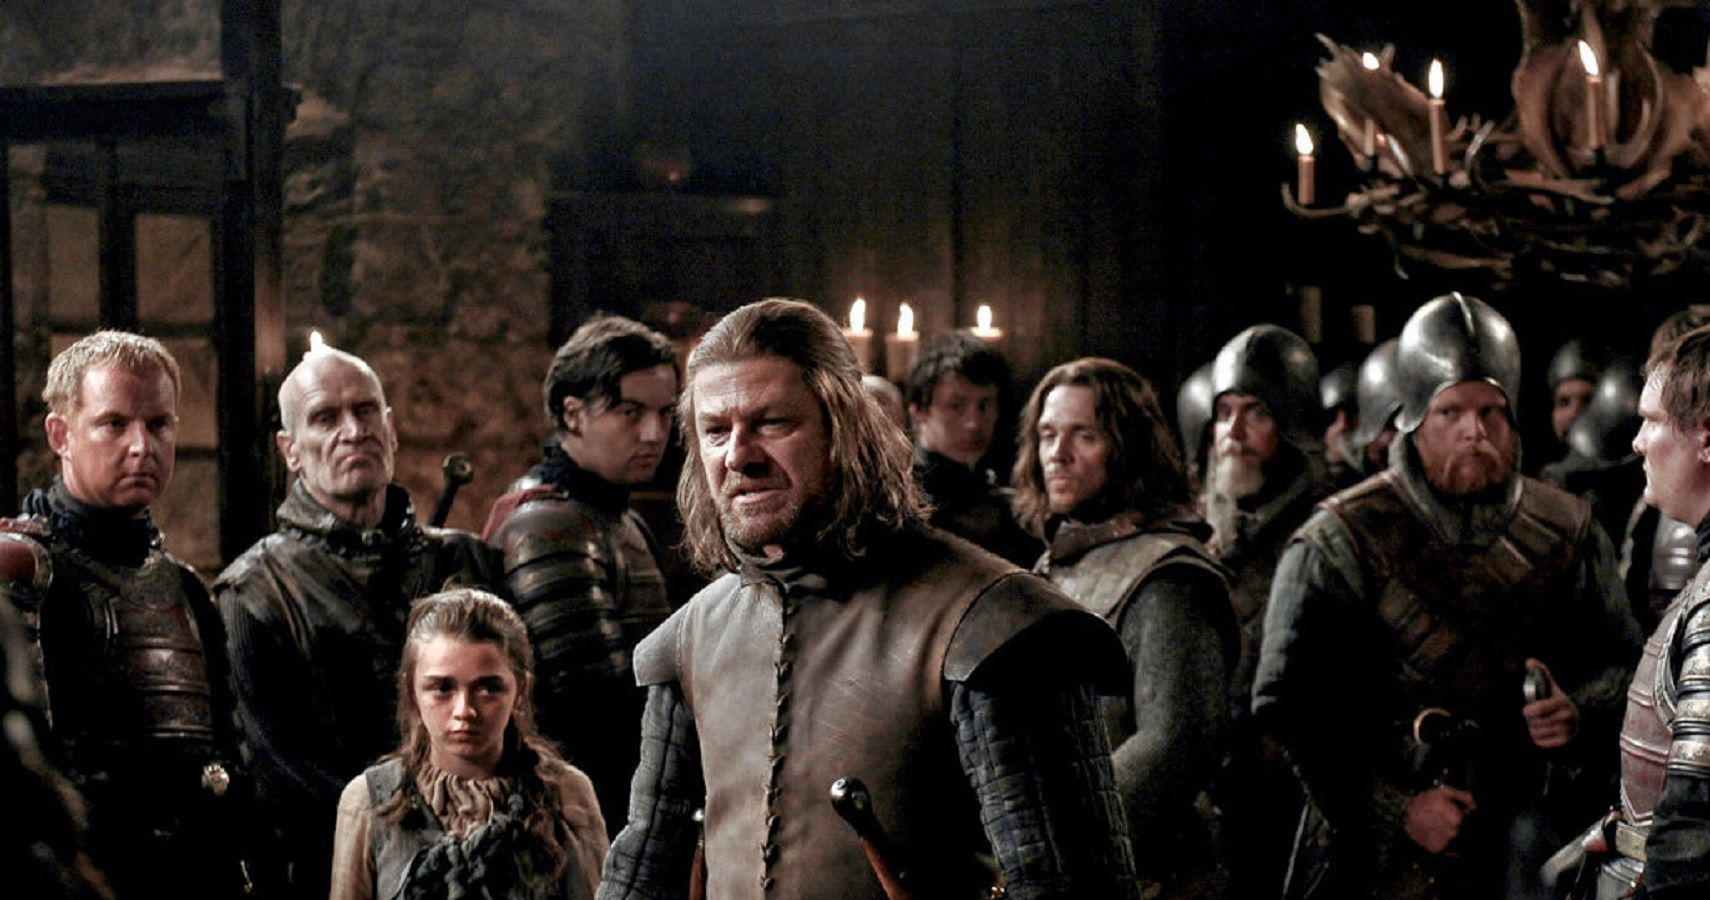 Ten Years On, Game Of Thrones' First Season Is Still The Gold Standard